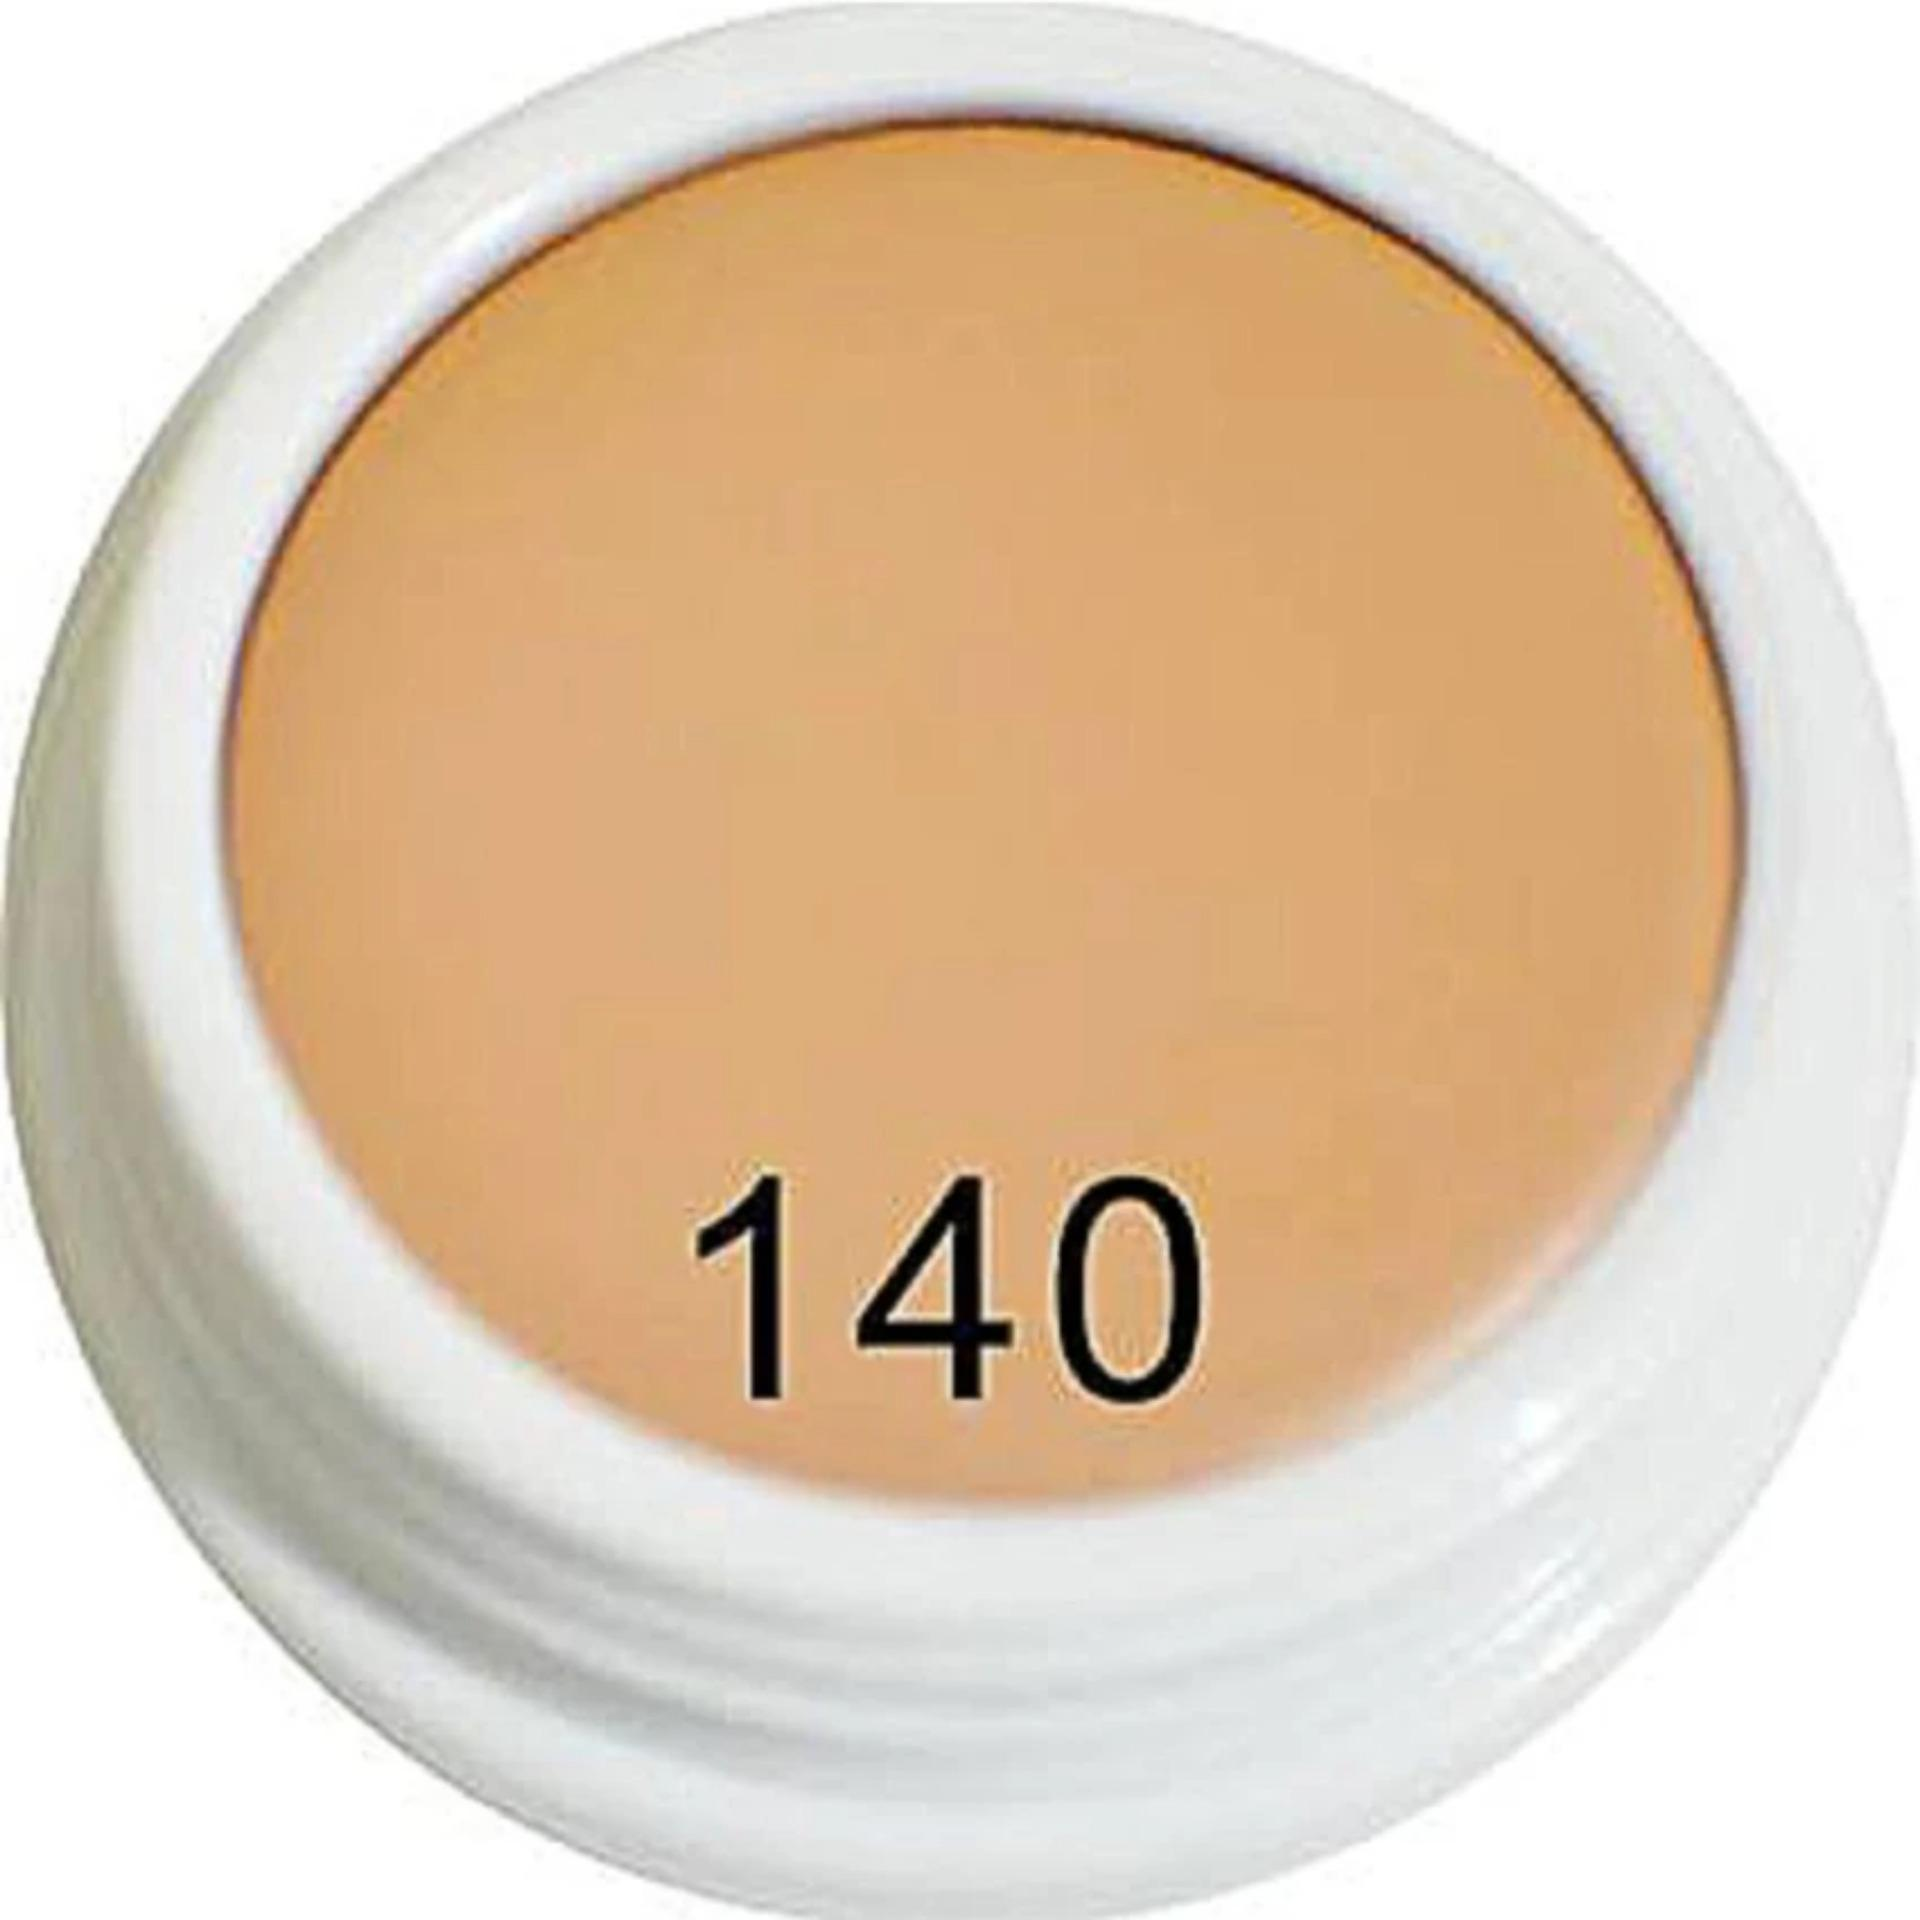 alas bedak naturactor / naturactor foundation cream / naturactor cover face best er – no. 140